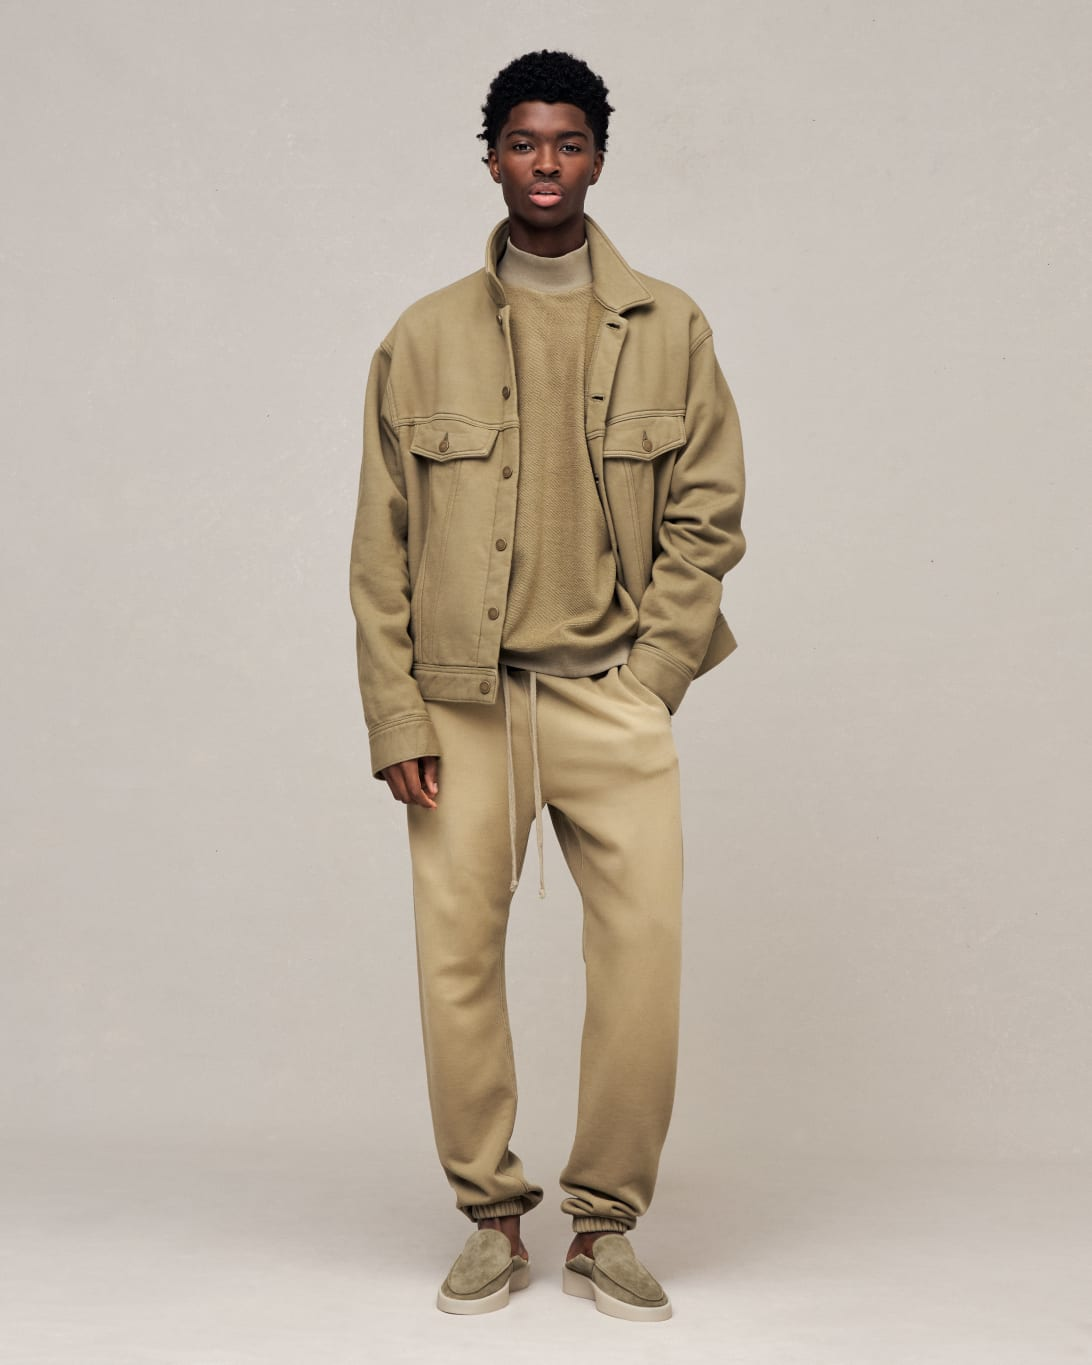 Seventh Collection | Fall/Winter Lookbook Look 02